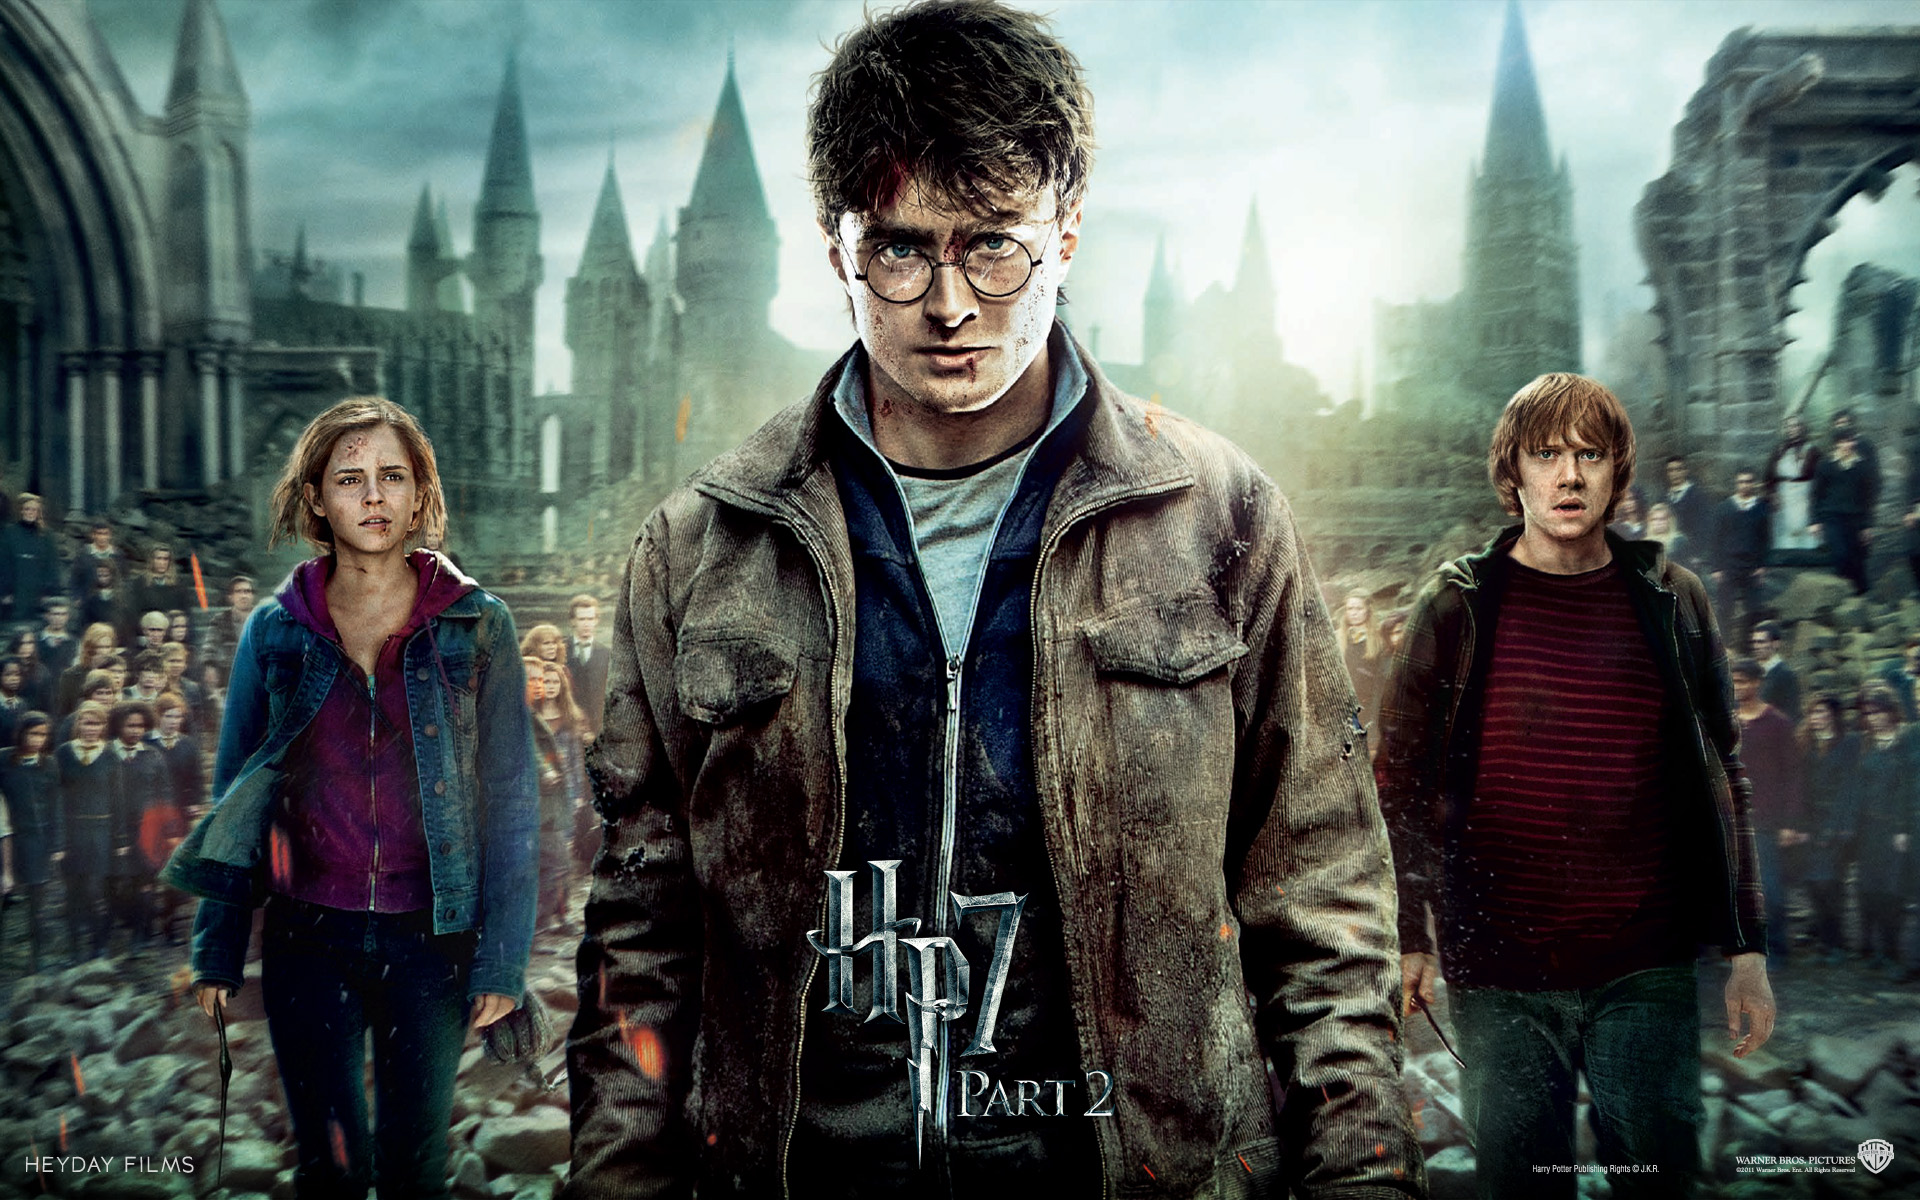 Harry Potter And The Deathly Hallows Wallpaper Hero - Harry Potter And The Deathly Hallows Part 2 Wallpaper - HD Wallpaper